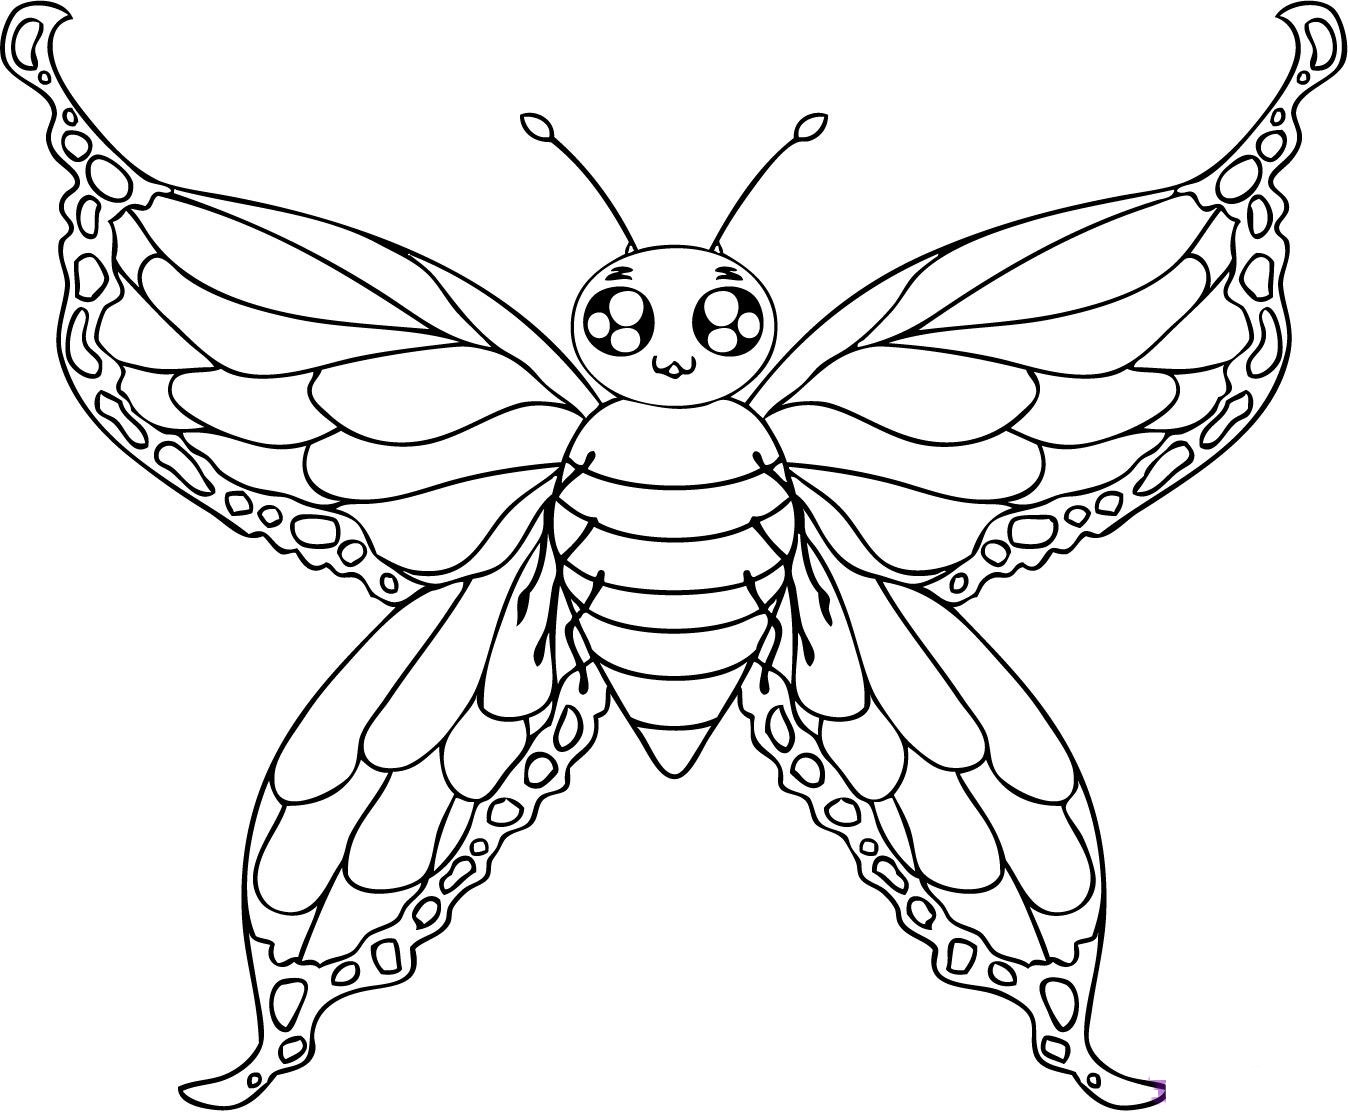 printable butterfly coloring page free printable butterfly coloring pages for kids coloring printable page butterfly